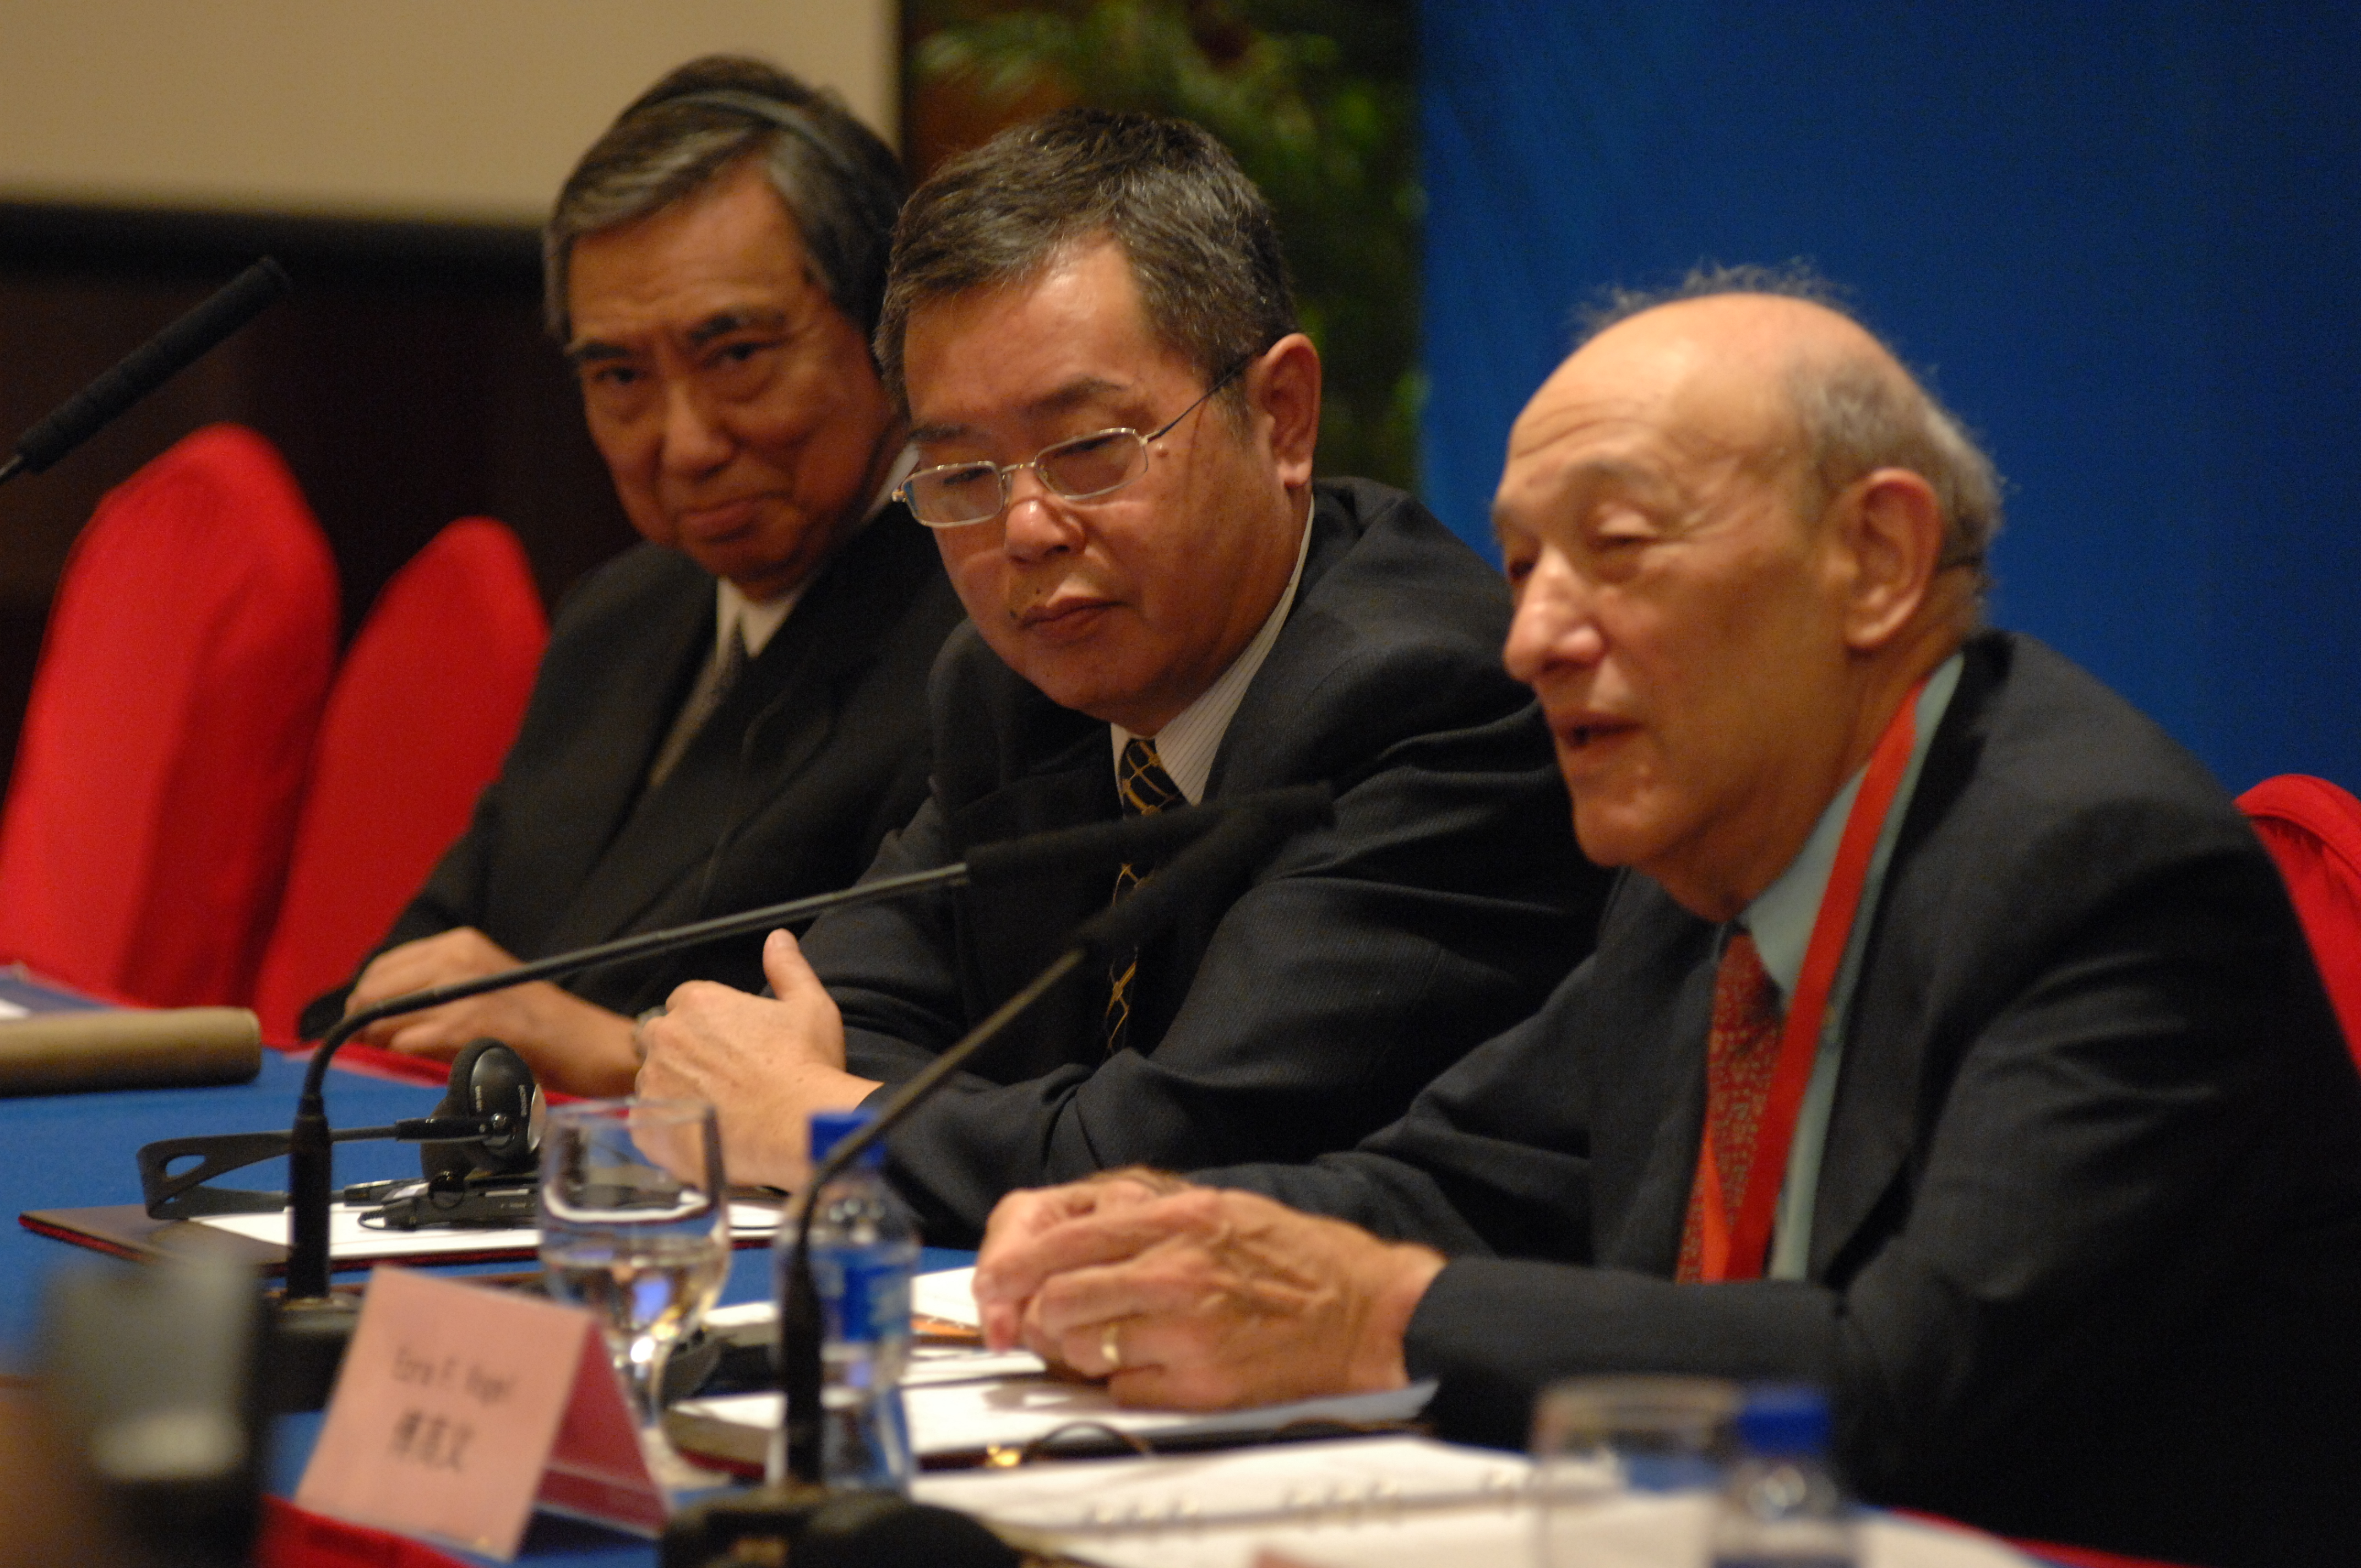 Ezra Vogel, right, speaking at the Beijing symposium on the China-Japan-US relationship with Yohei Kono, left, and Li Yang, center.